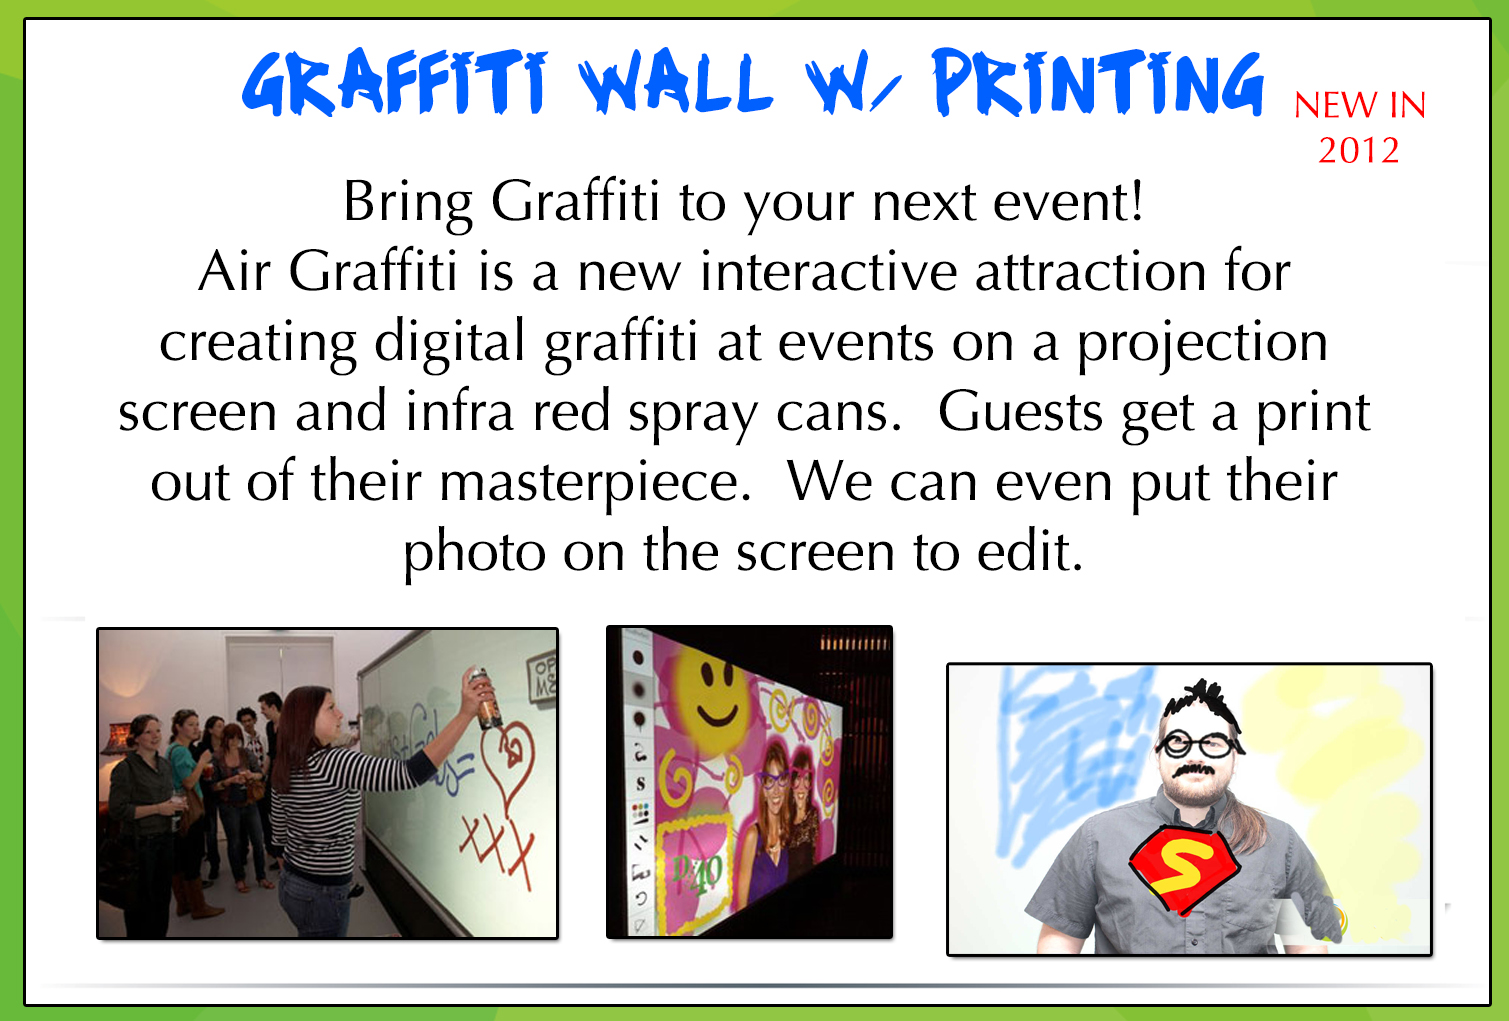 Graffiti Wall Flyer